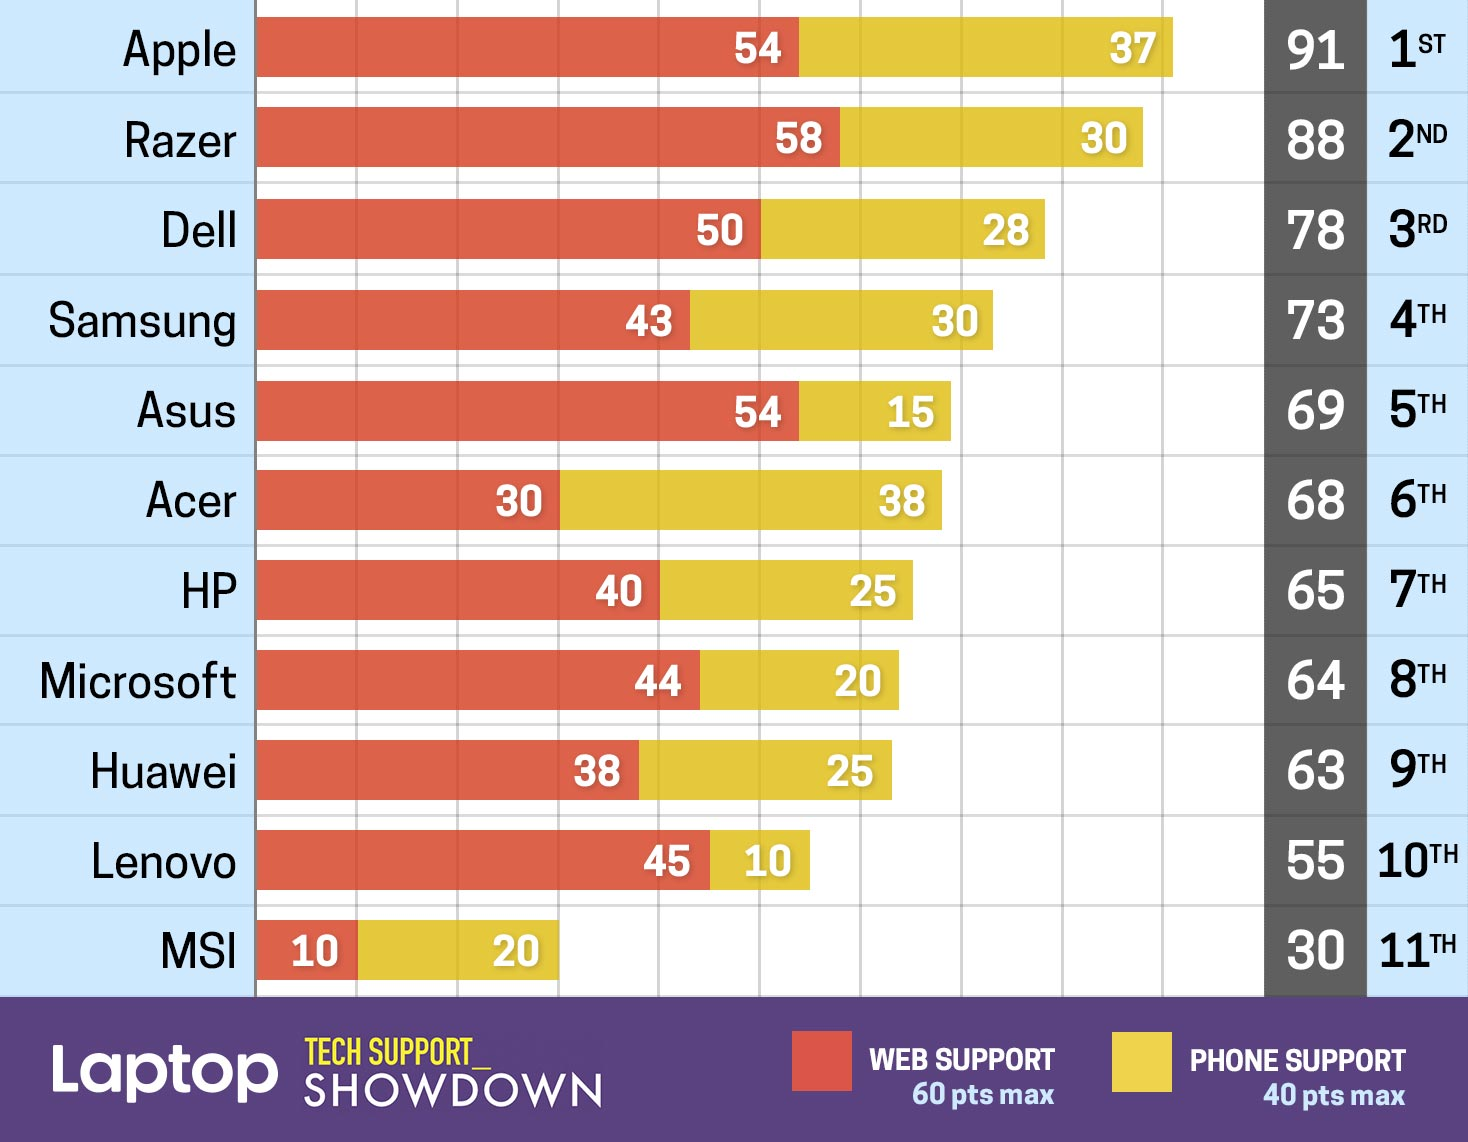 apple customer support ranking